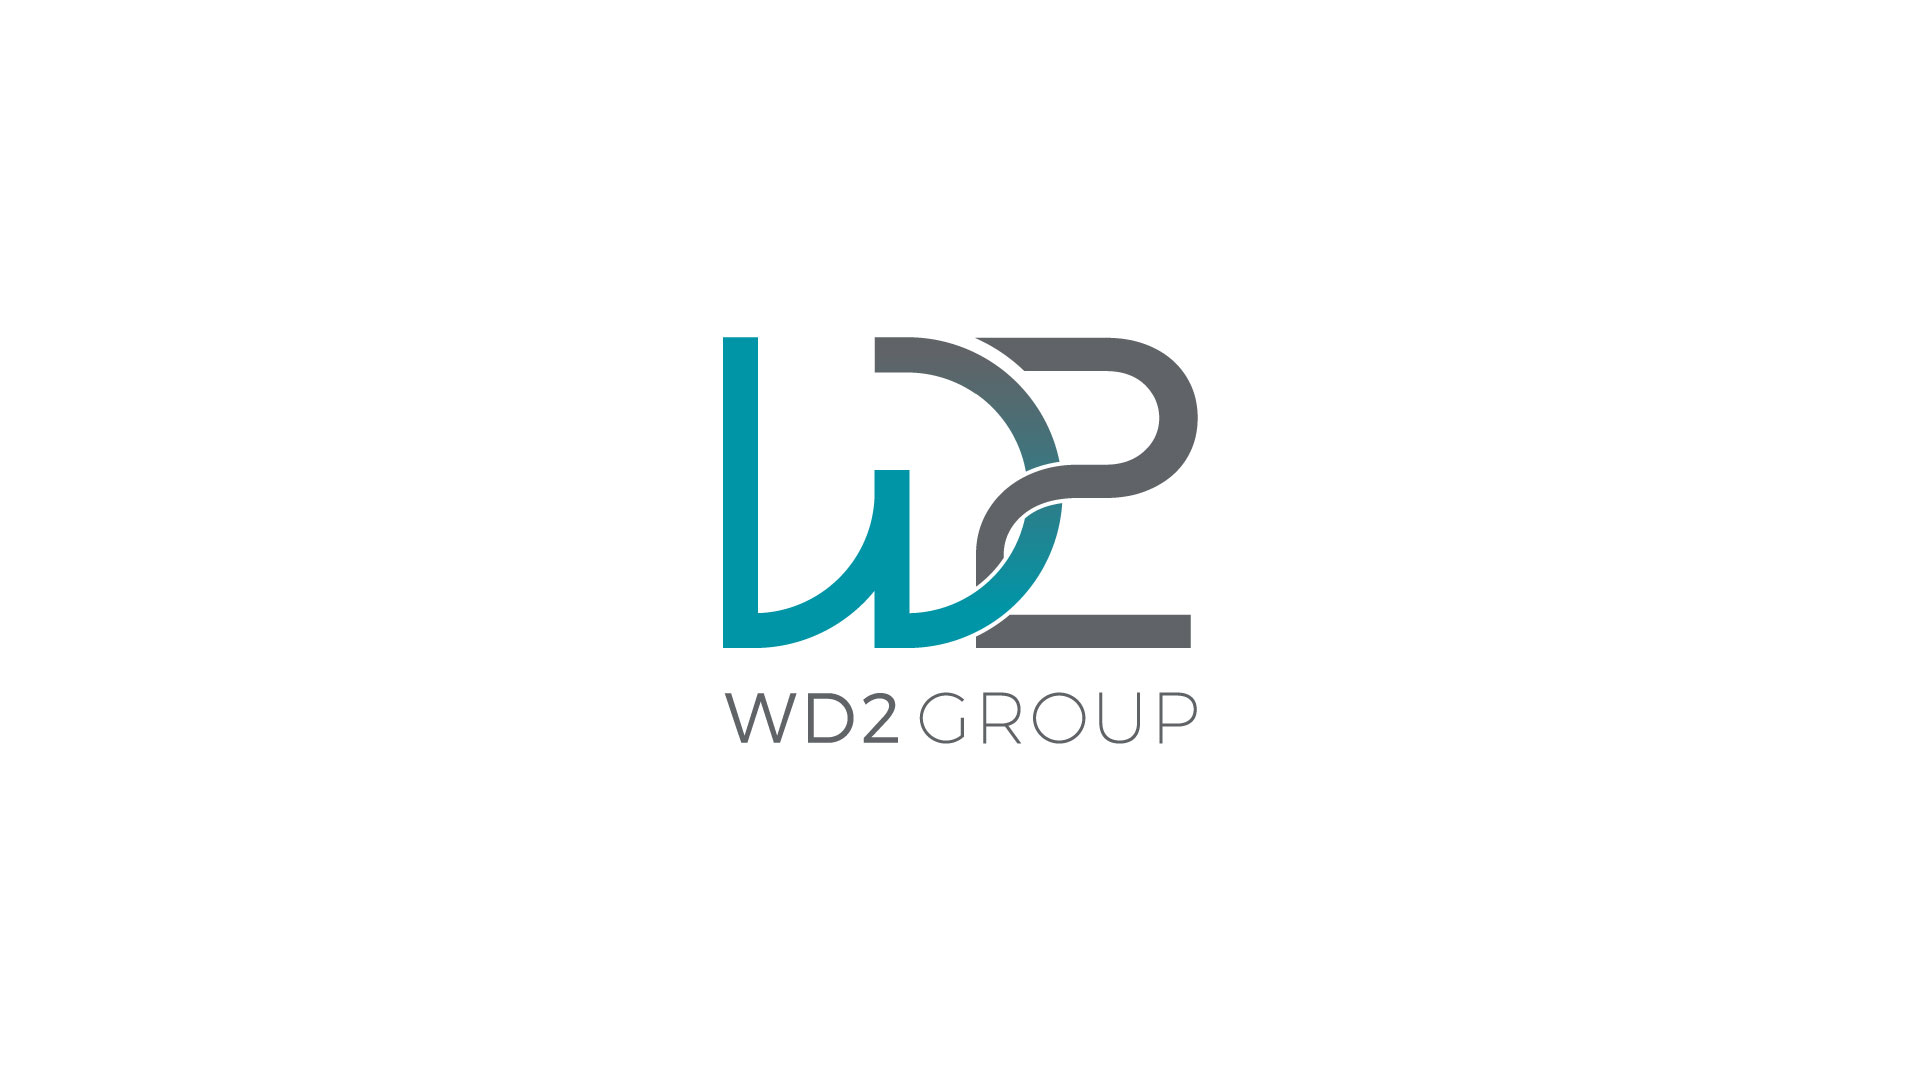 WD2 GROUP – LOGOTIPO